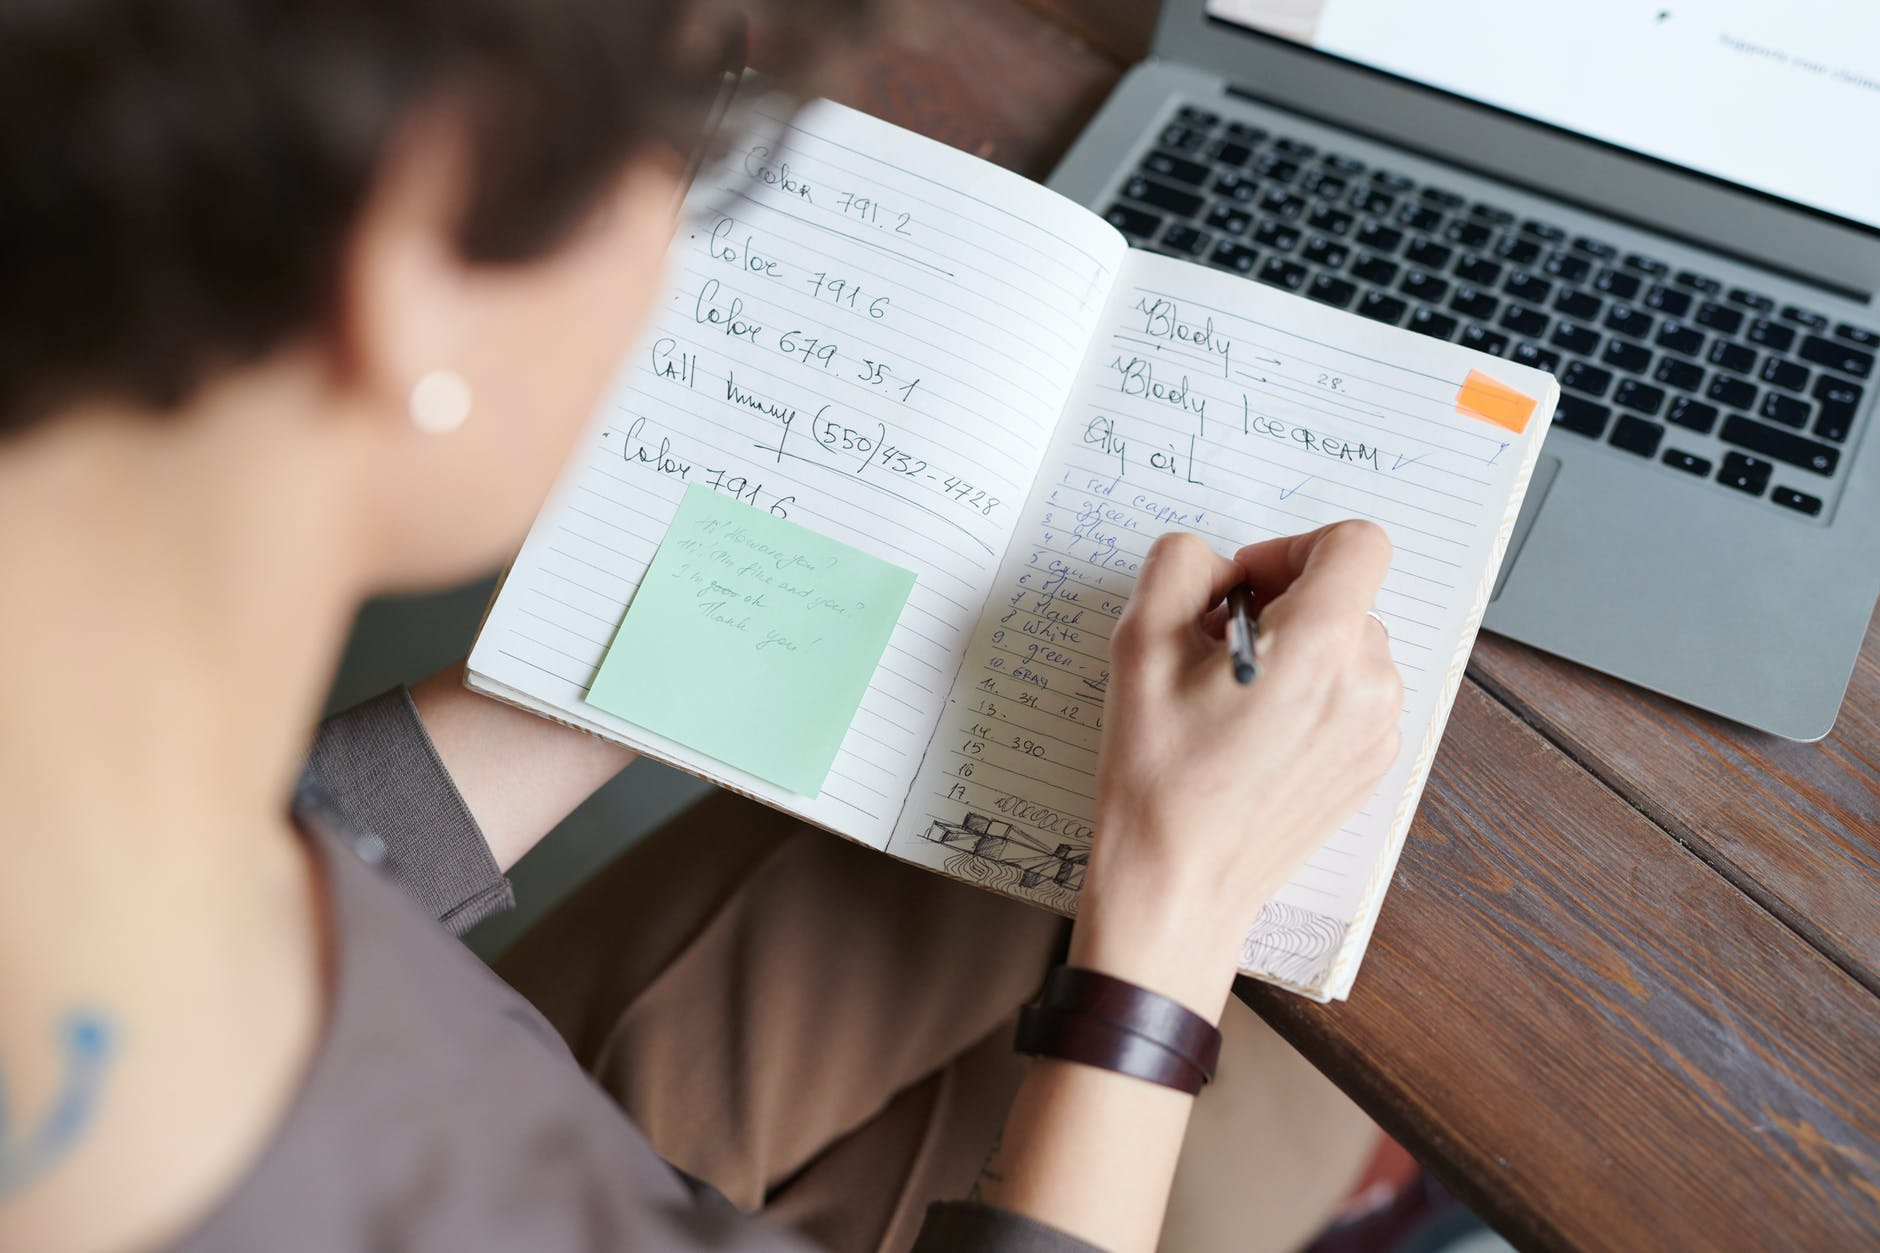 photo of person writing on notebook